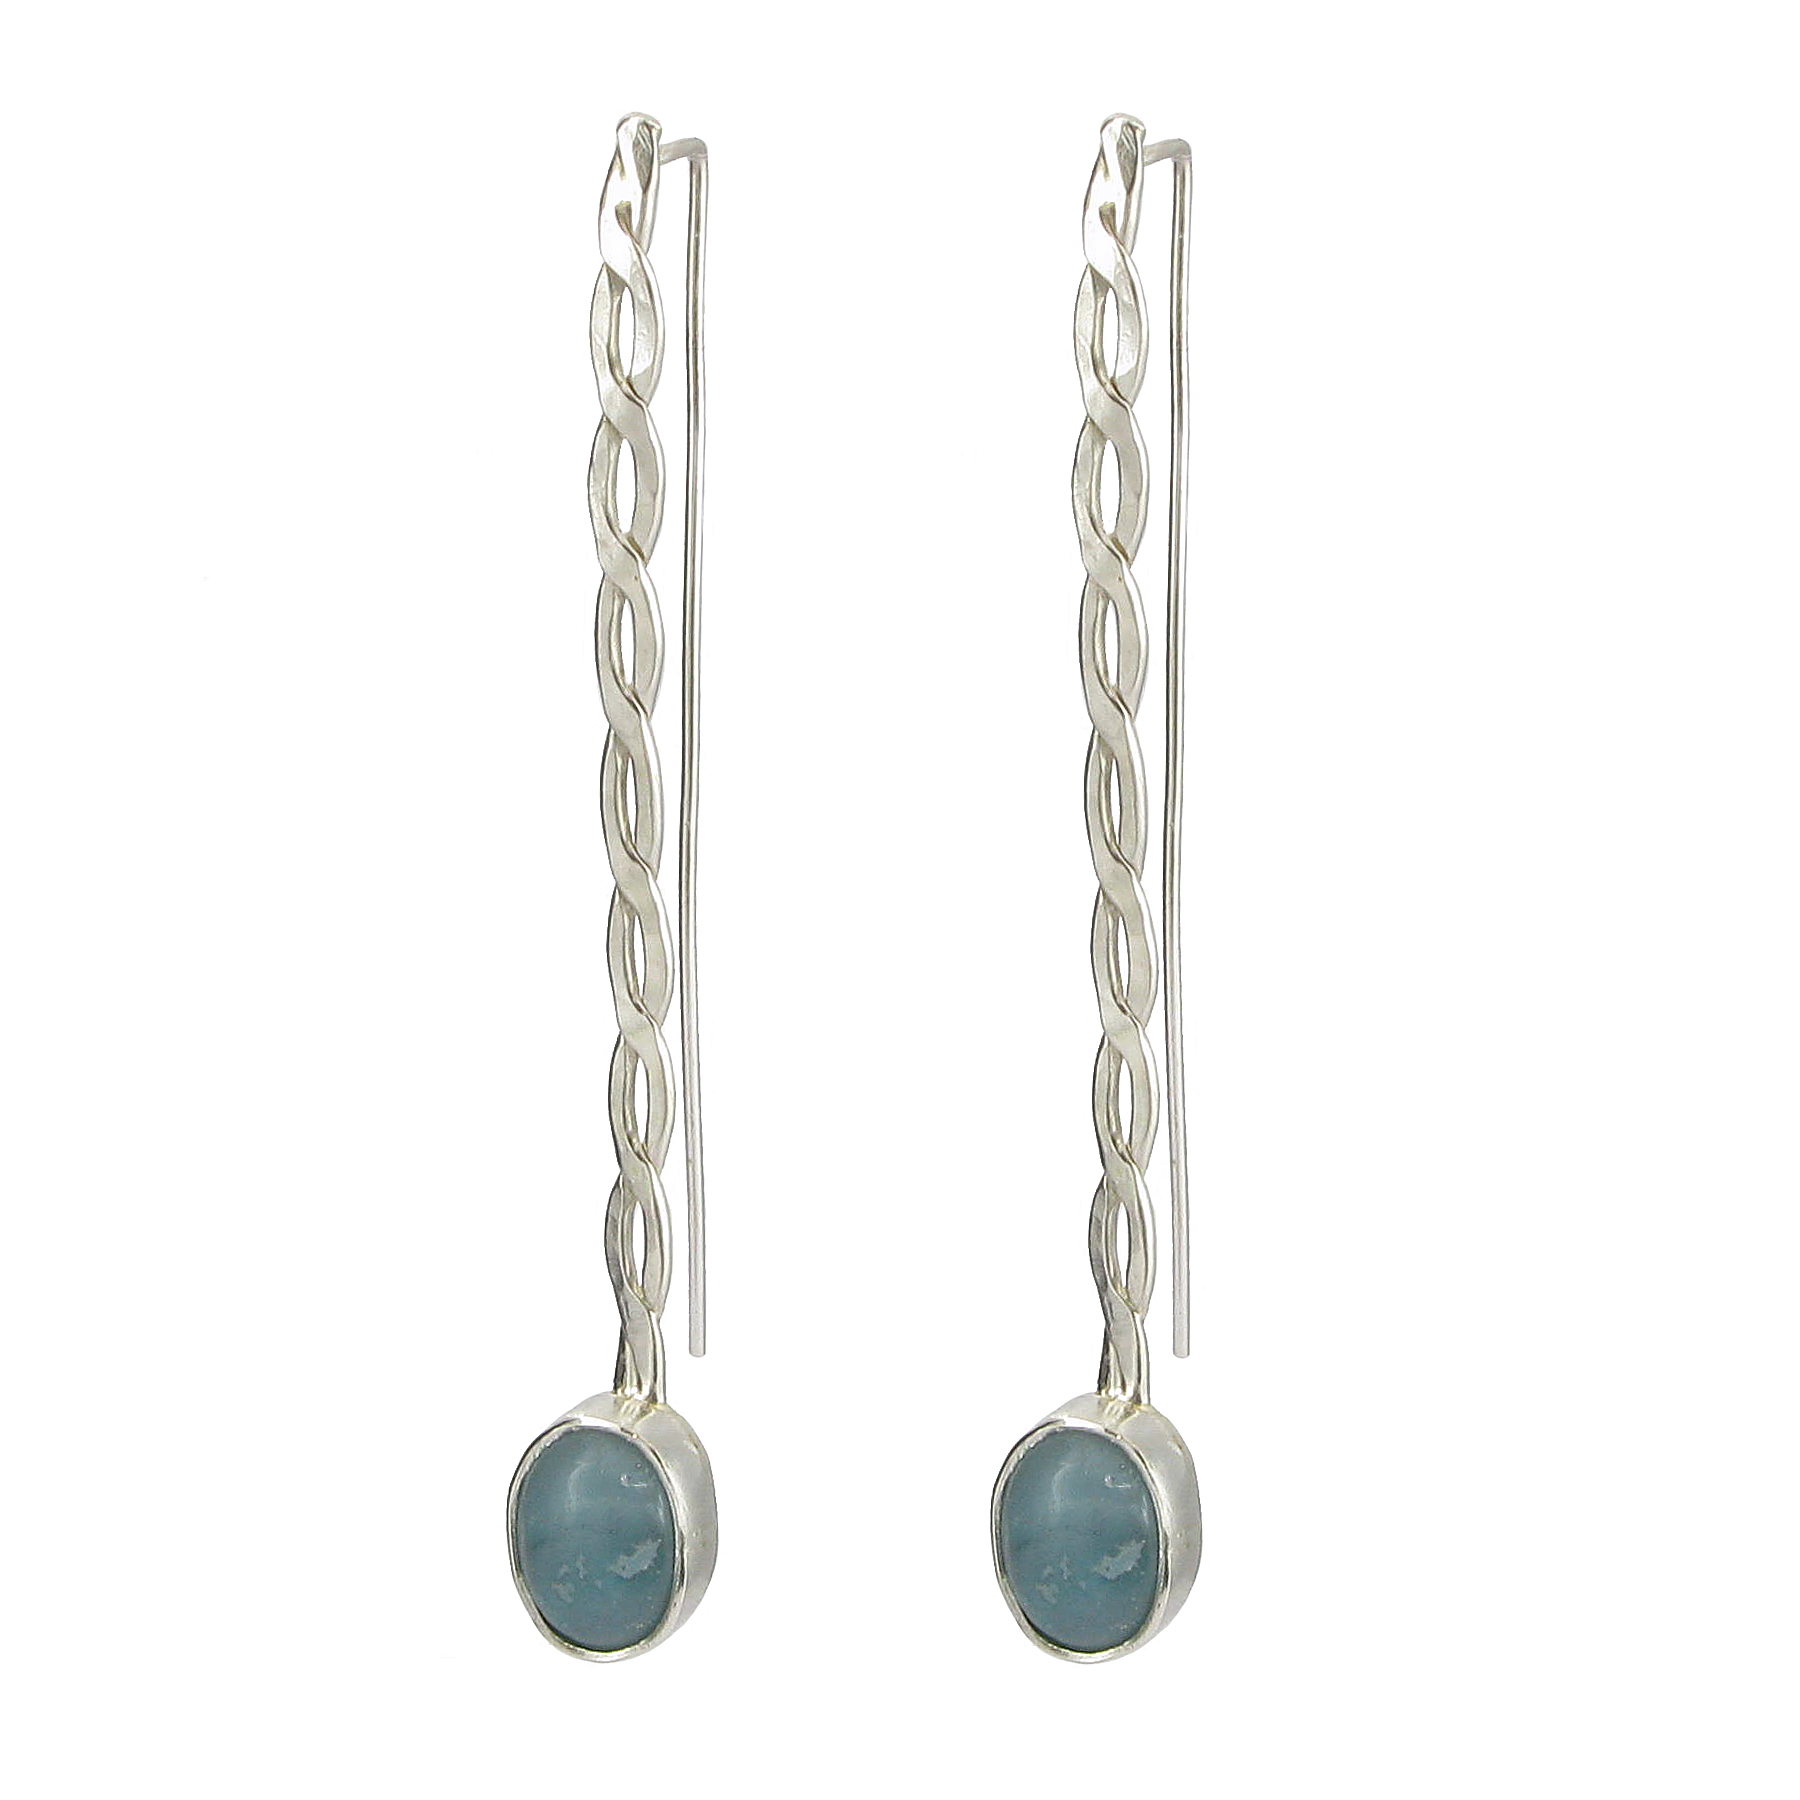 Amazonite stone drop earrings